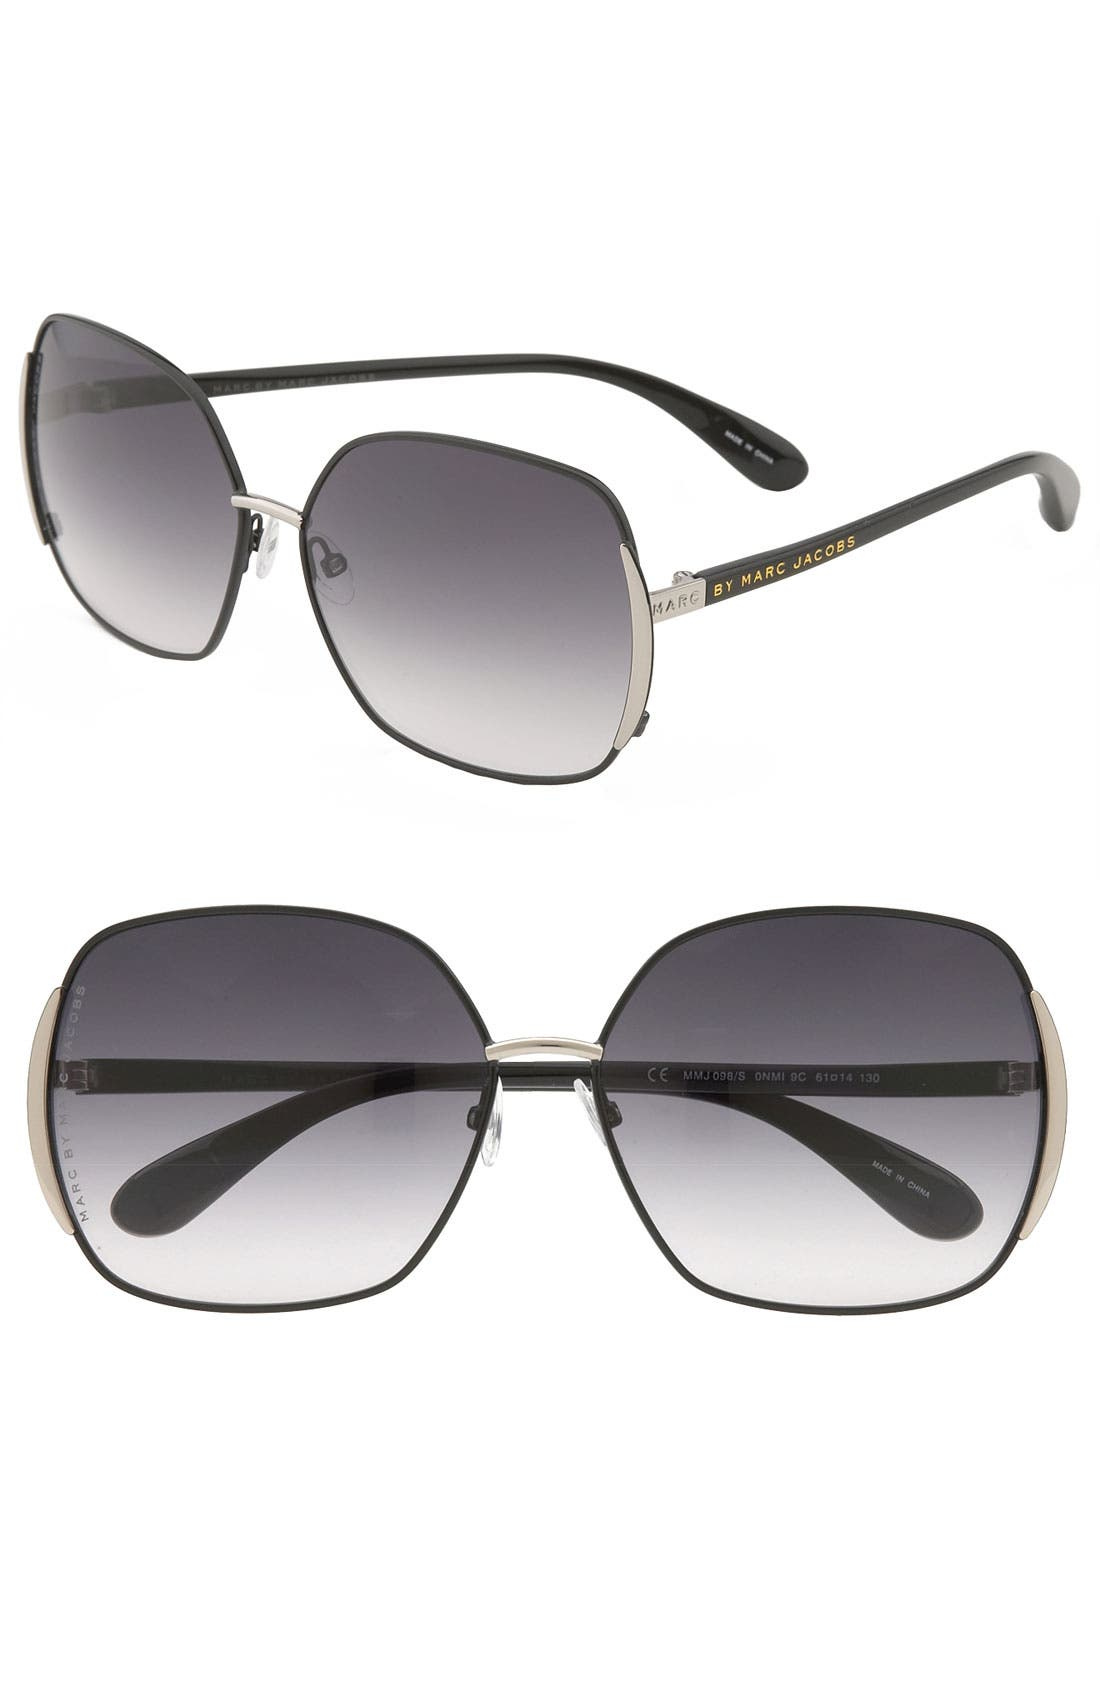 61mm Vintage Inspired Oversized Sunglasses,                             Main thumbnail 1, color,                             001